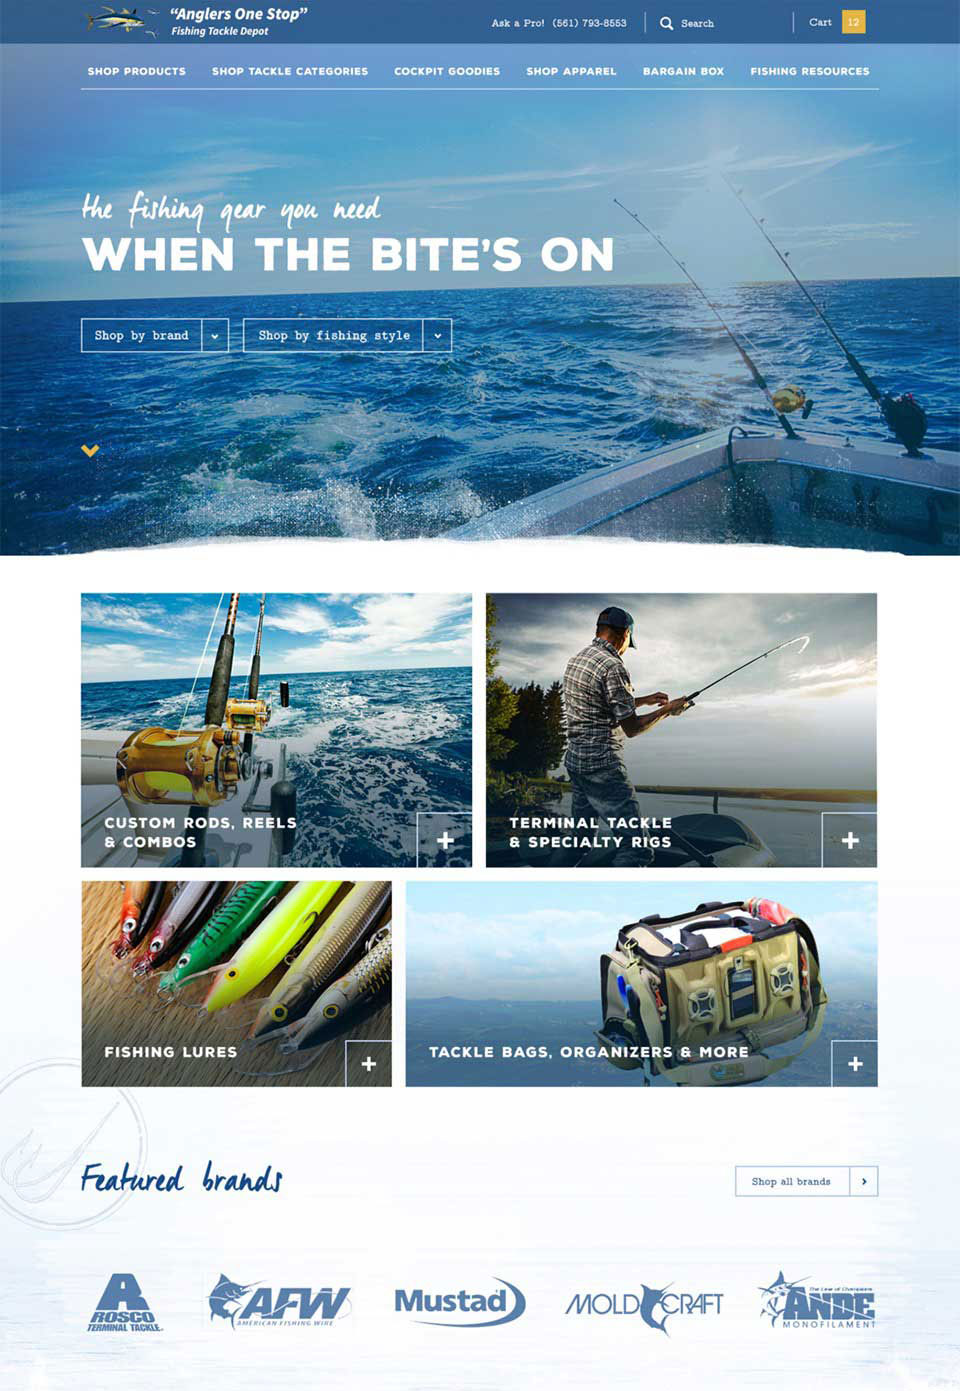 Anglers One Stop Fishing Tackle Depot